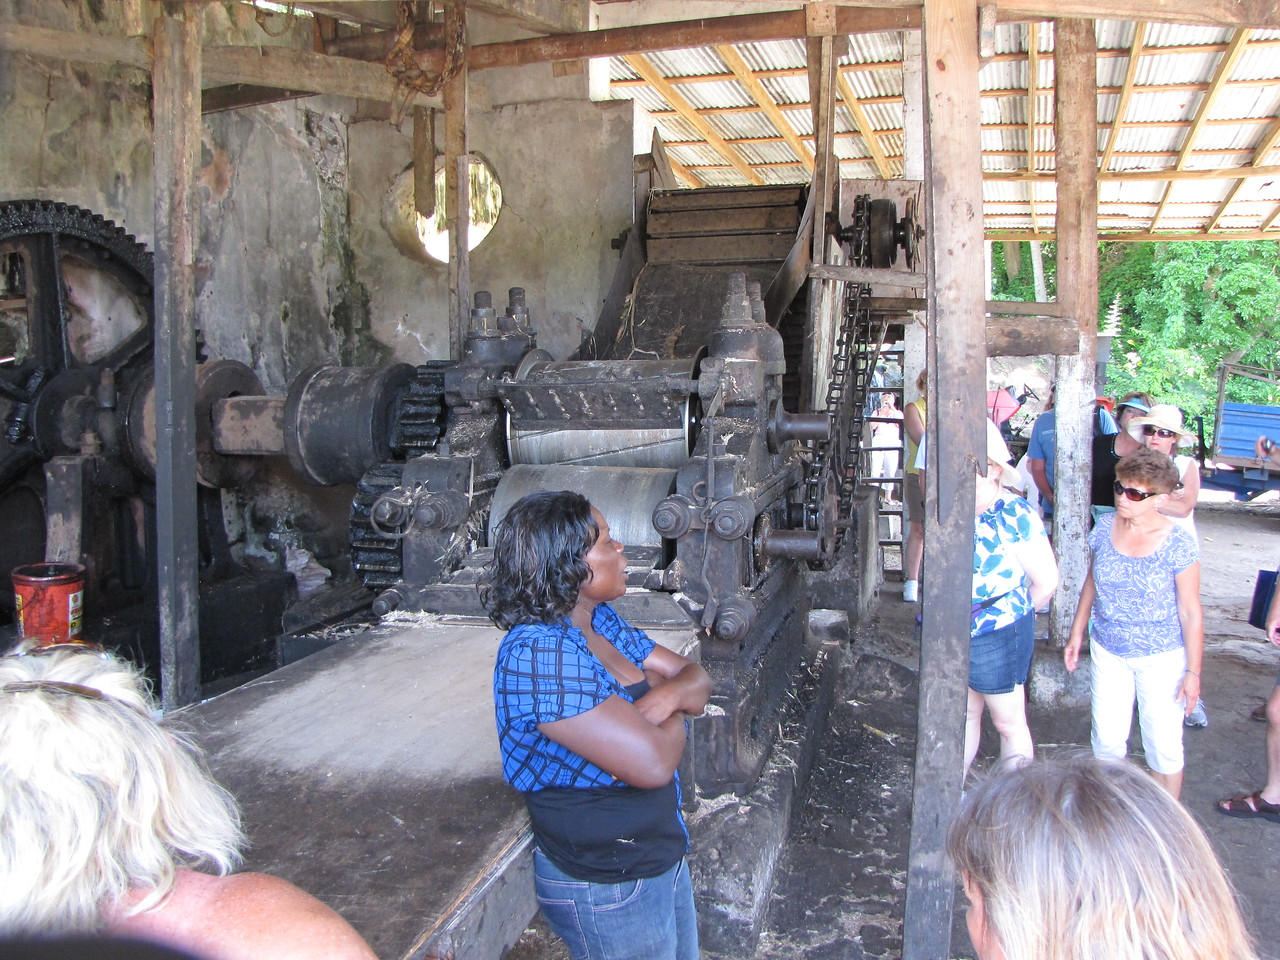 A distillery employee tells us about the sugarcane grinder behind her.